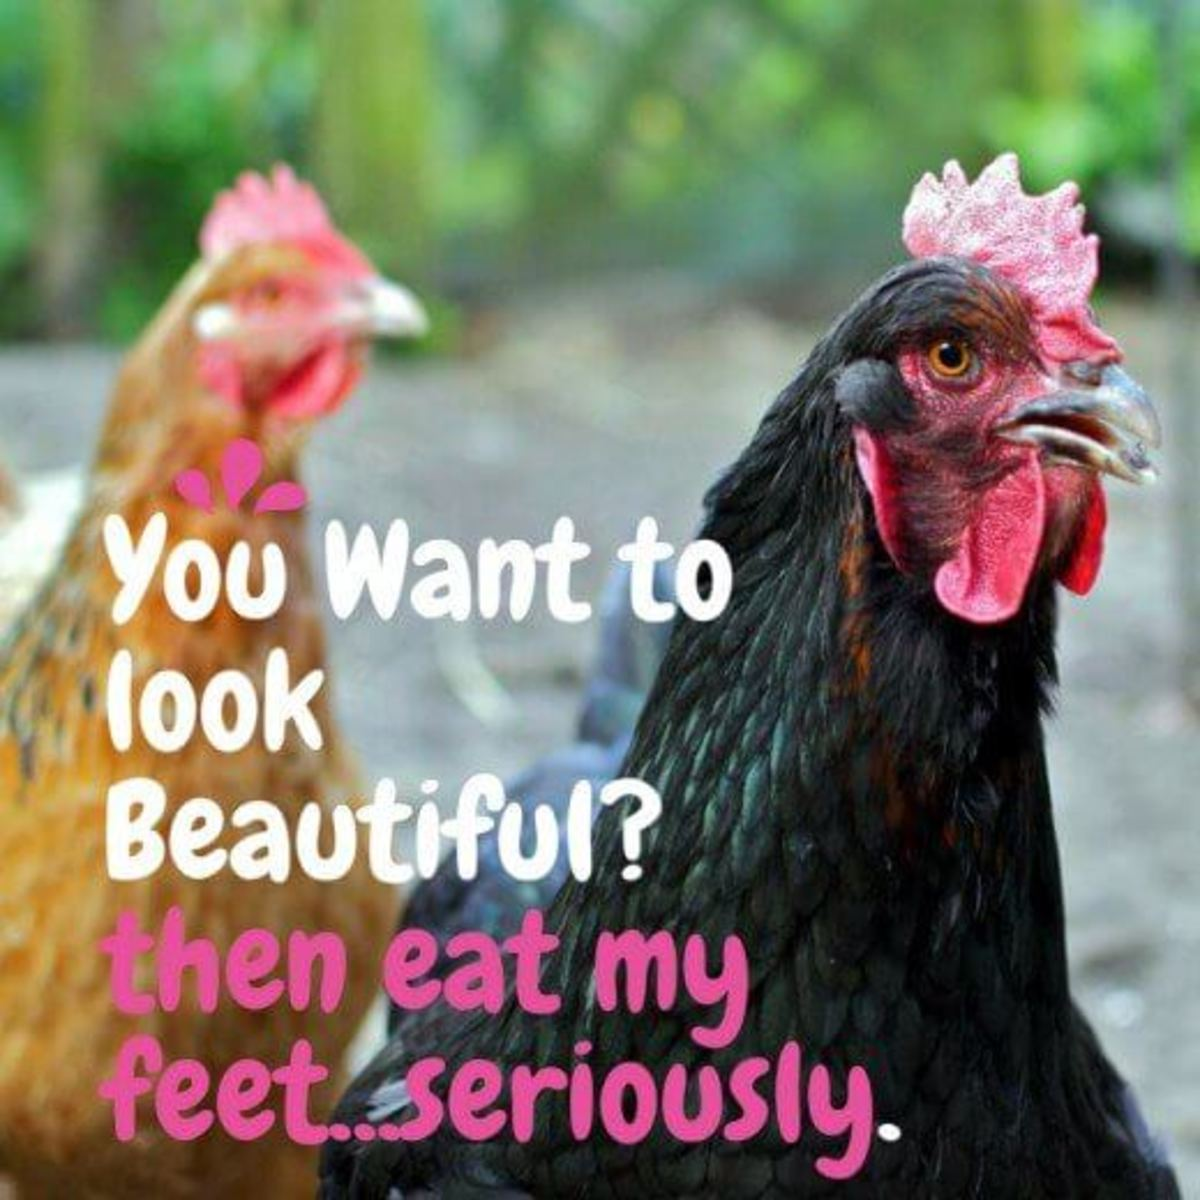 is-there-any-benefits-in-eating-chicken-feet